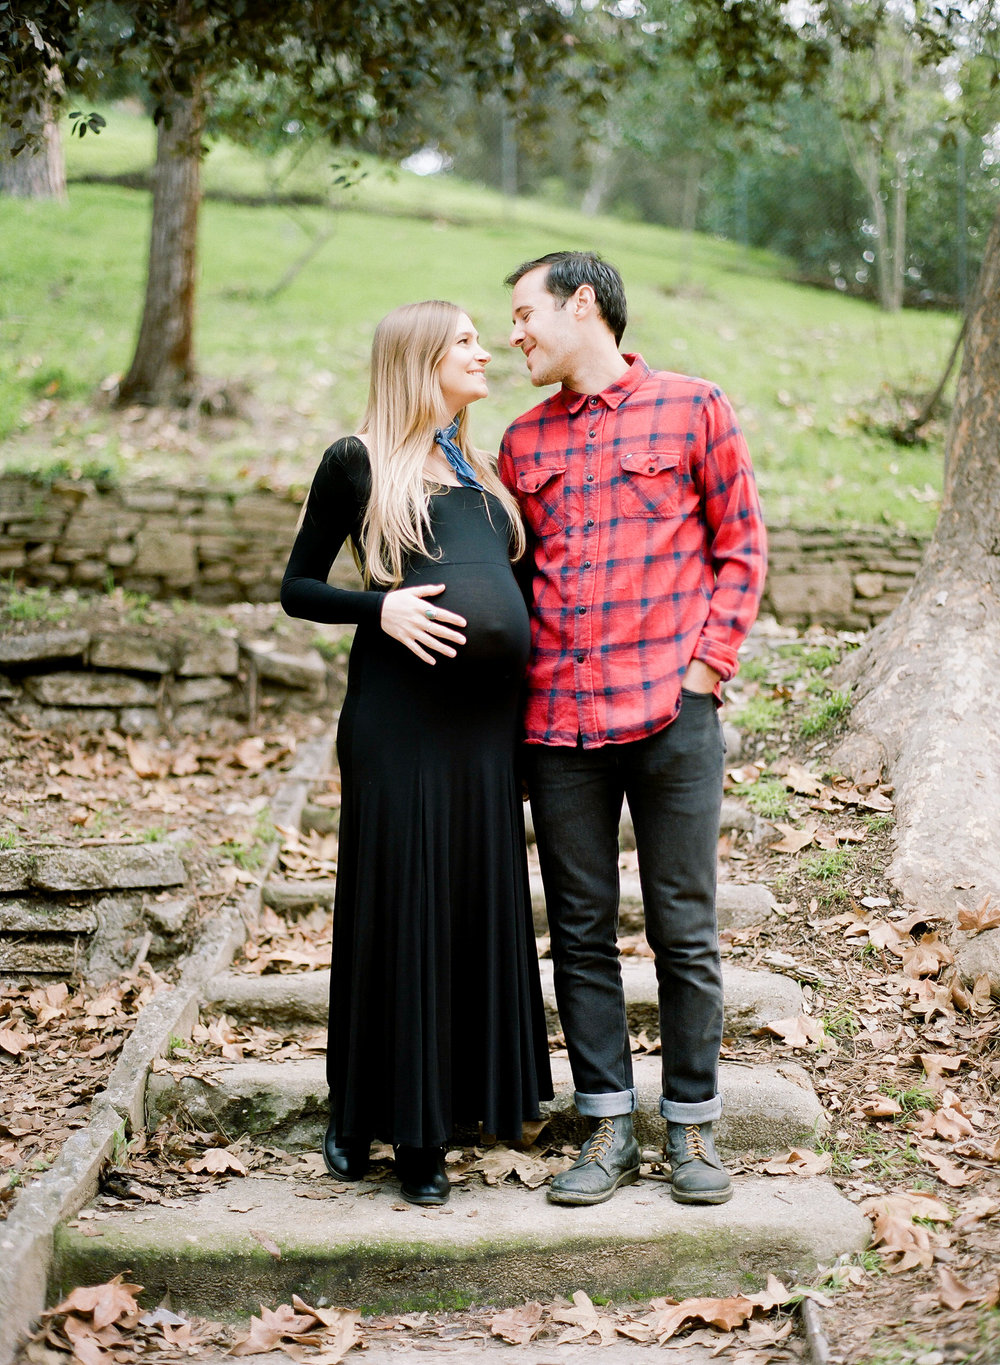 Chrissy & David Maternity Session-36.jpg